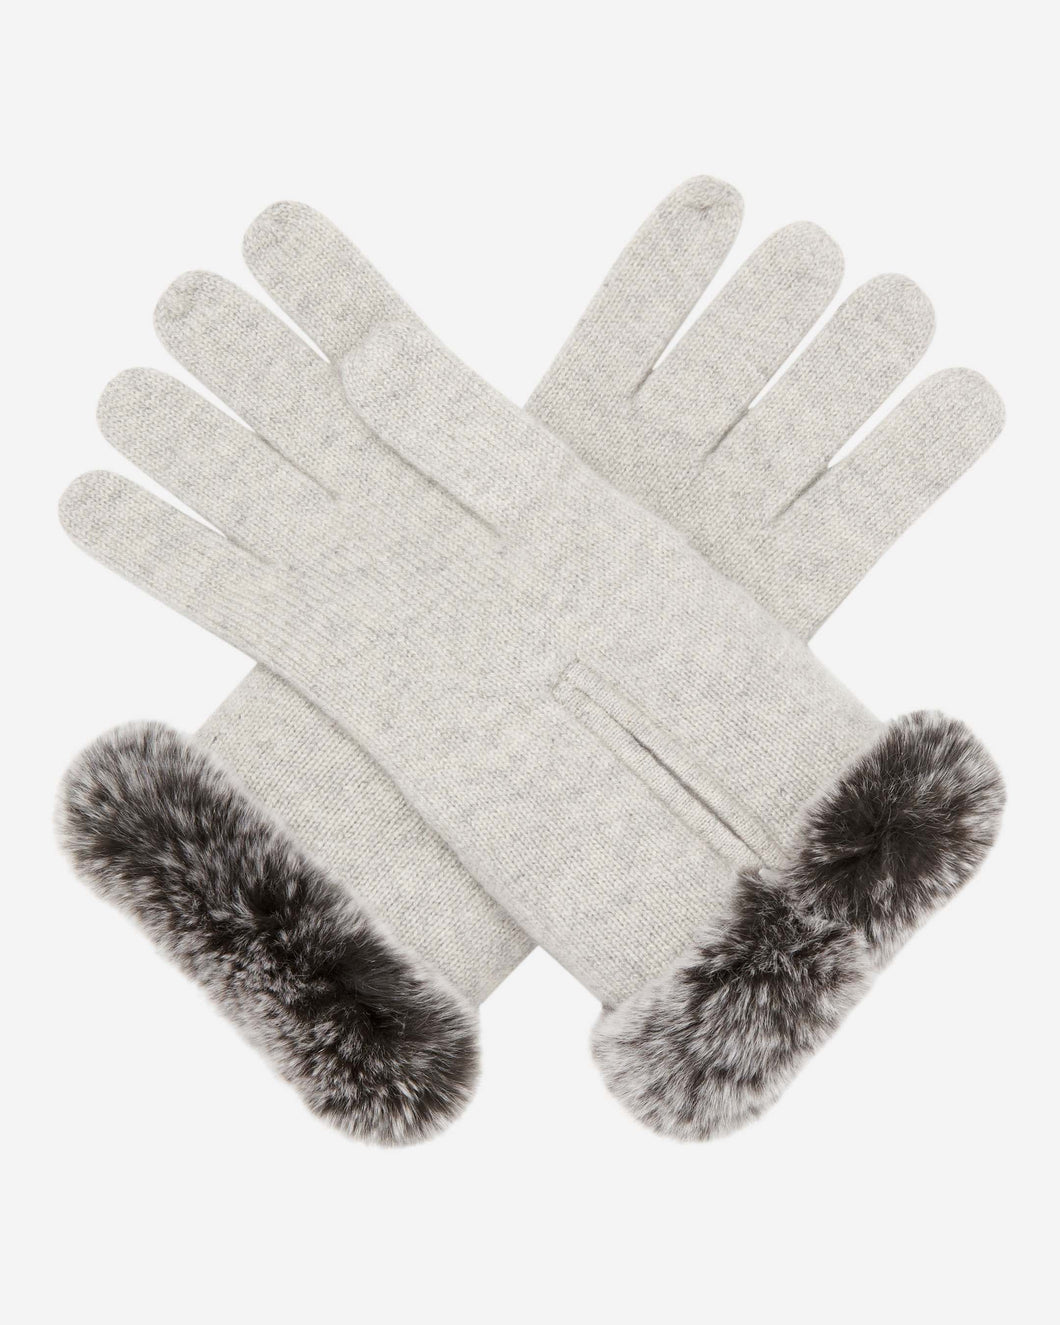 Fur And Cashmere Gloves Fumo Grey + Charcoal Grey Tipped Fur